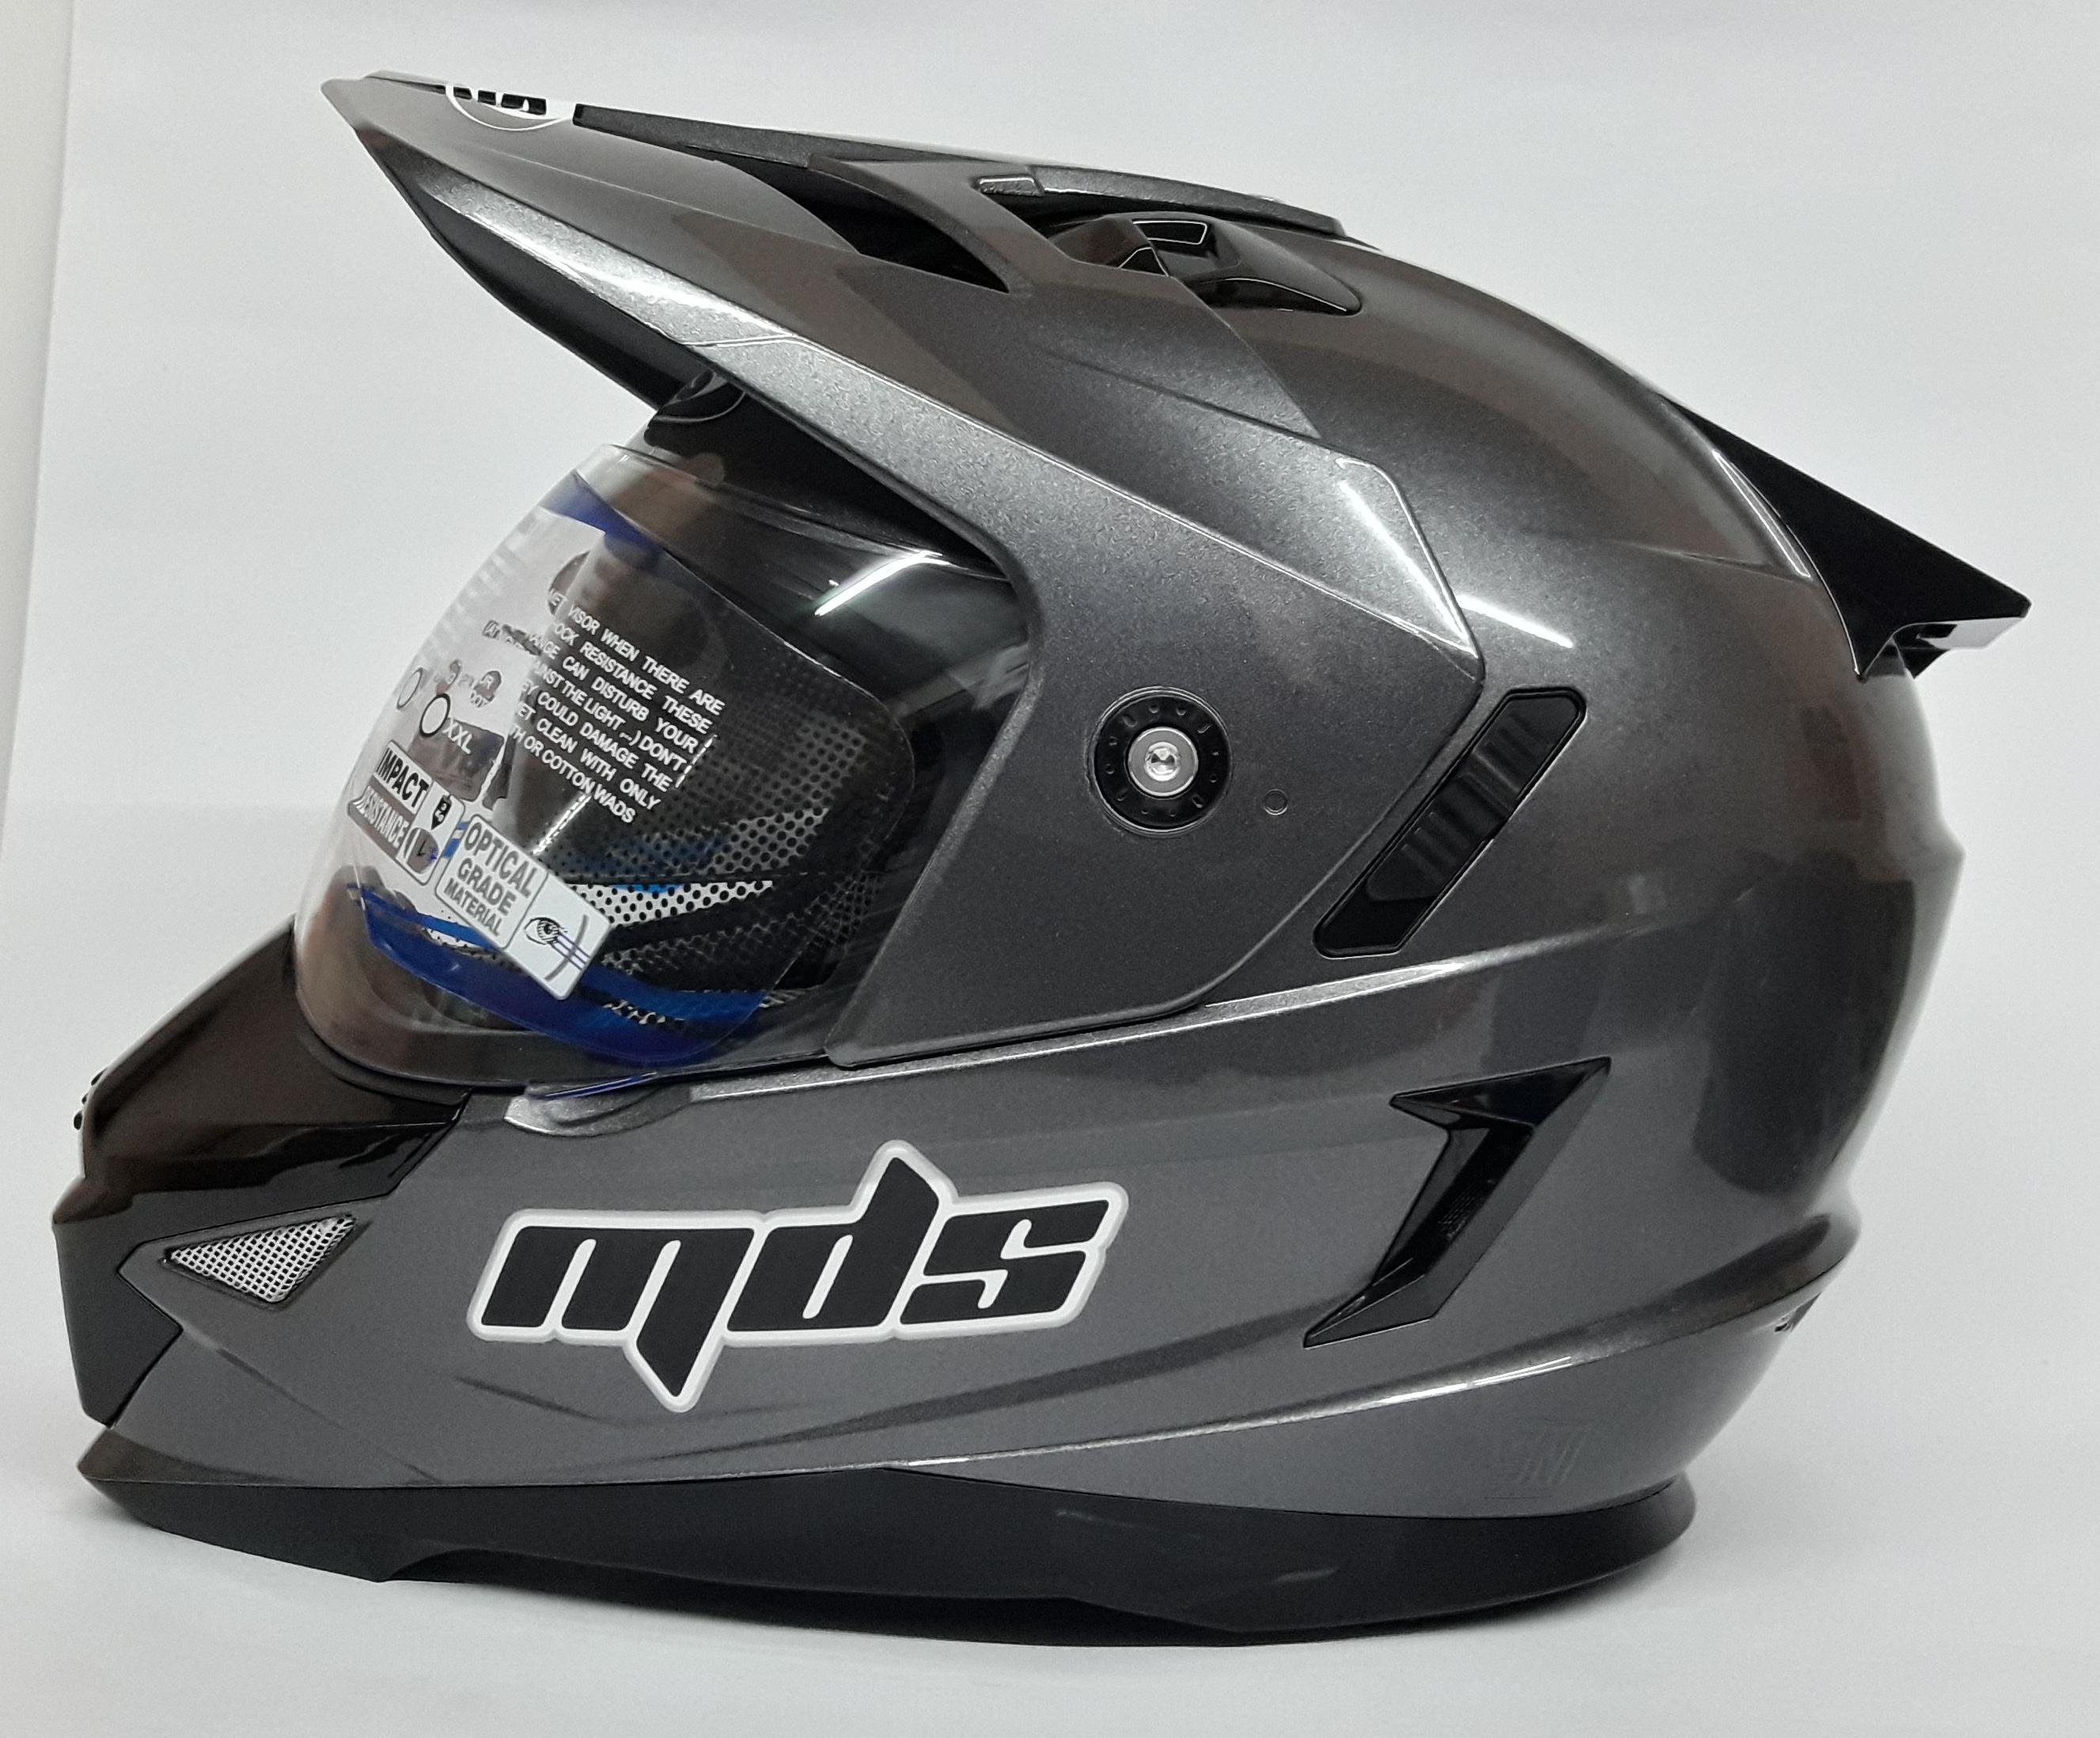 Mds Super Pro helm Fullface - Graphite metalik